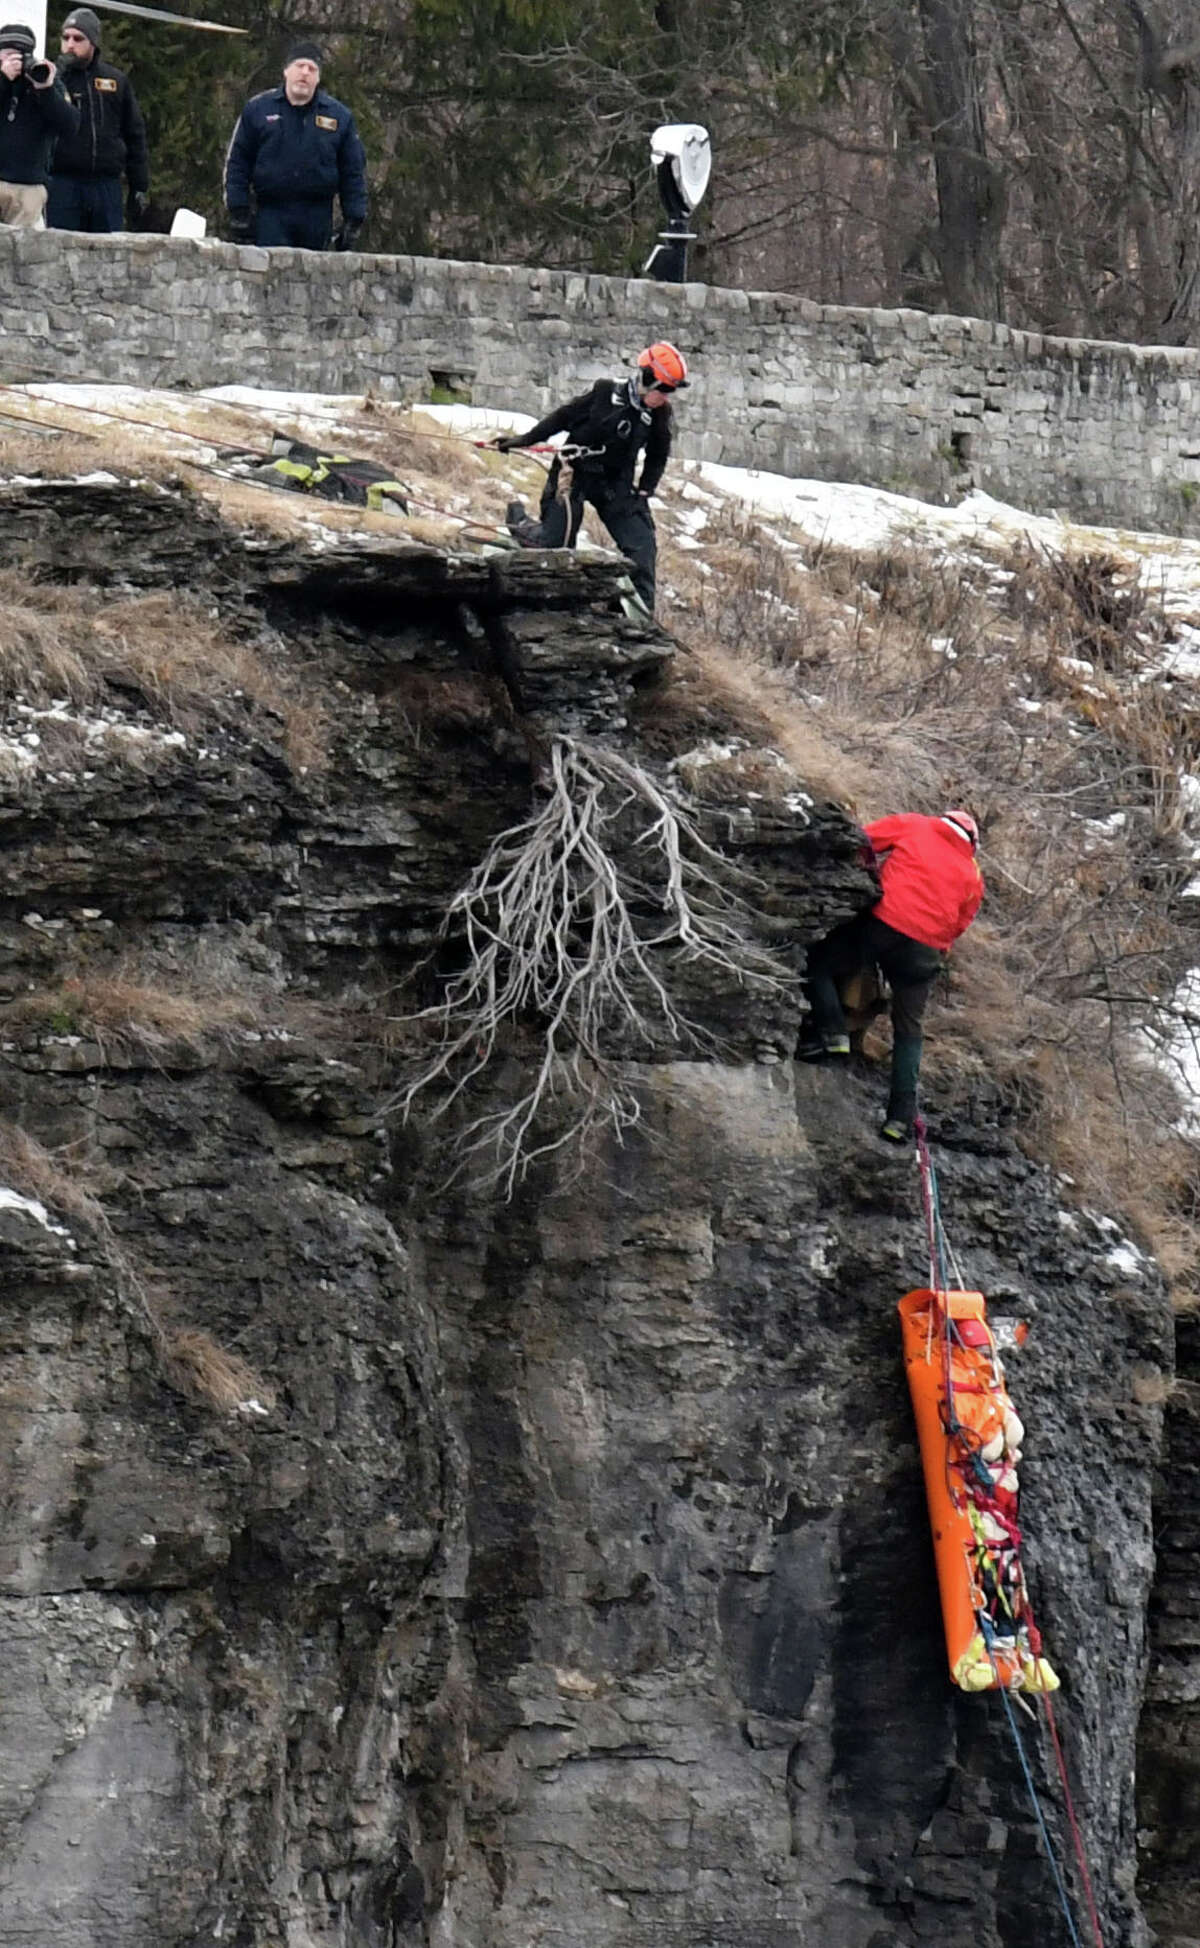 Zachary L. Barrantes, 25, is rescued from the John Boyd Thacher State Park escarpment on Friday, Jan. 3, 2020, in New Scotland, N.Y. Barrantes went missing on New Year's Eve after taking an Uber to the popular Albany County lookout. He survived three days of frigid temperatures. A rescue team discovered him Friday morning. (Will Waldron/Times Union)